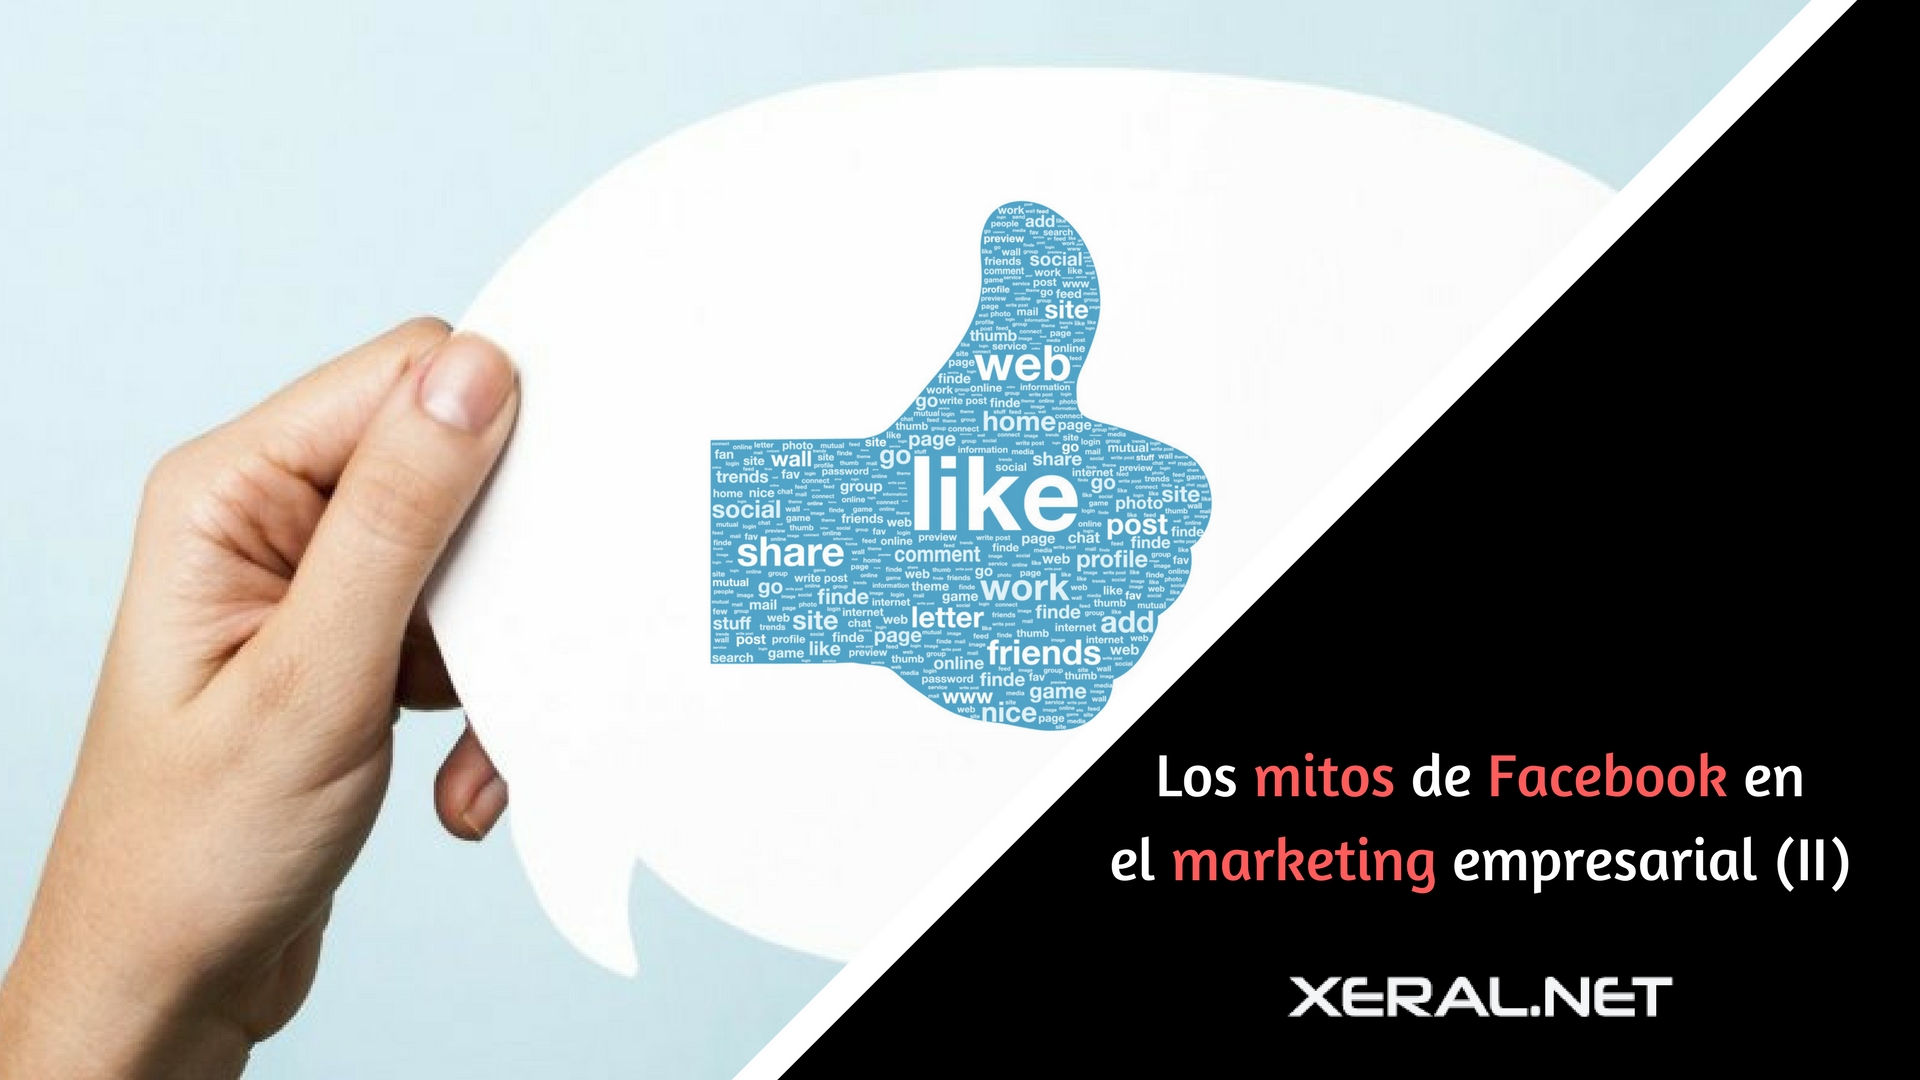 mitos de facebook en el marketing empresarial xeral.net